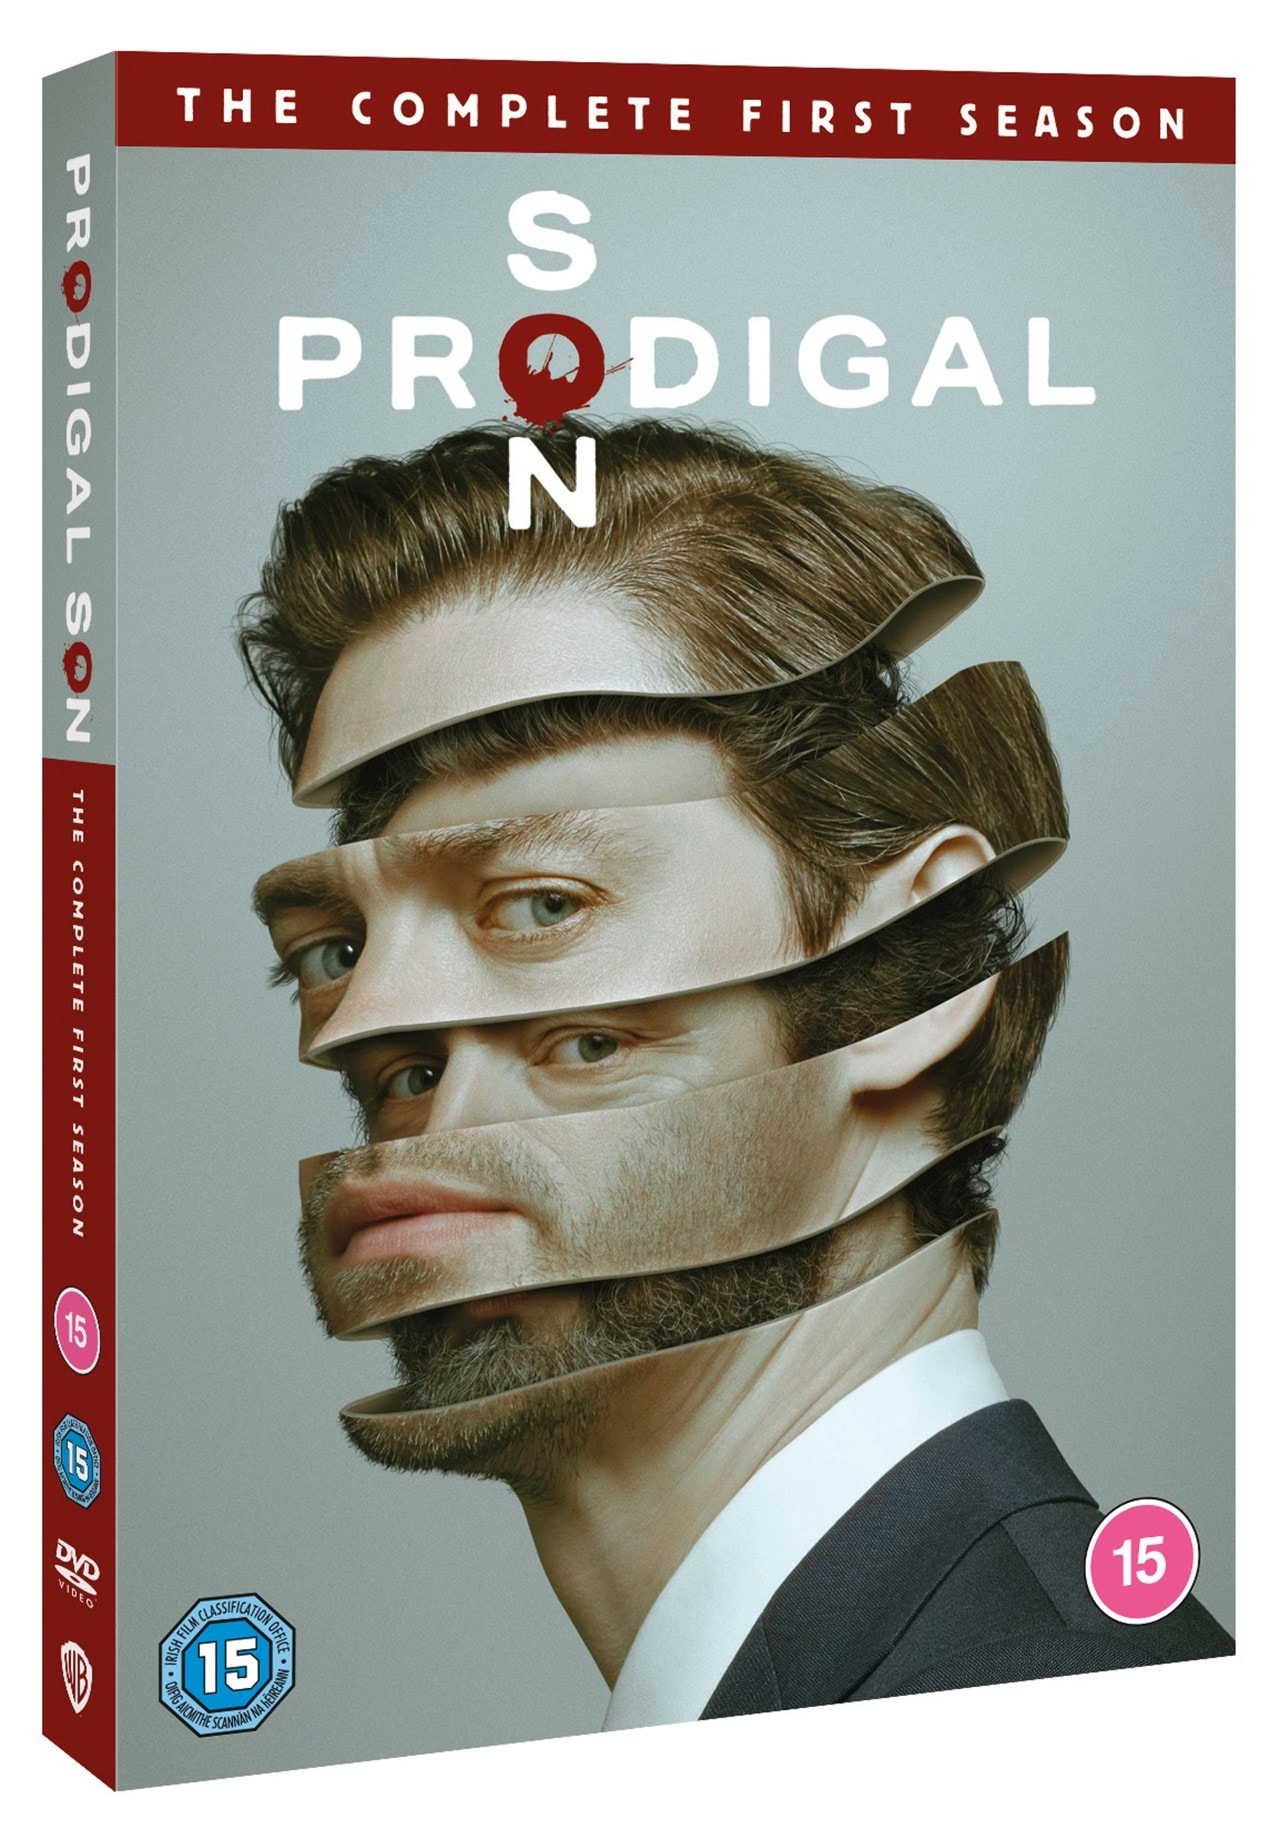 Prodigal Son: The Complete First Season - 2